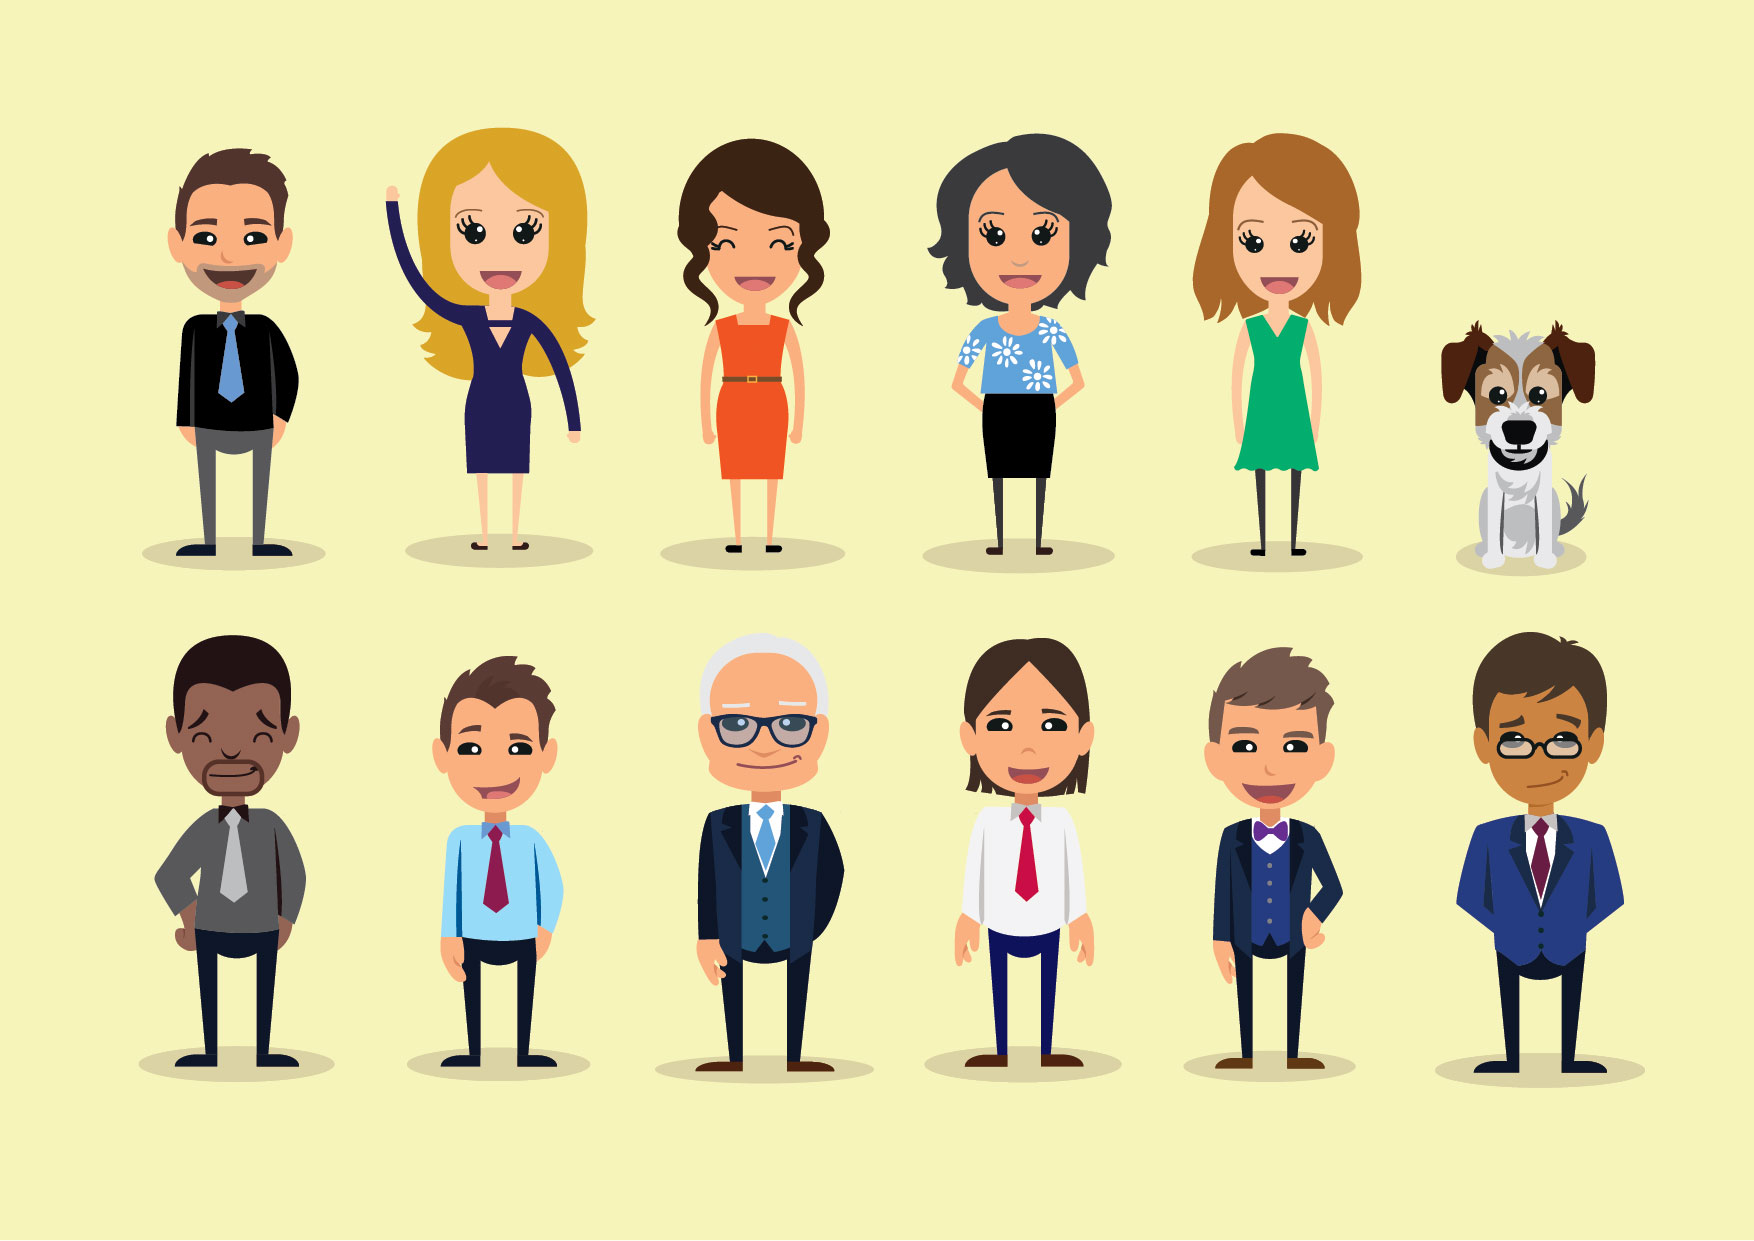 Character Design - Characters can be used in replacement of your 'Meet the Team' page, which makes a fun change to corporate photographs, or they can be used for many marketing purposes.